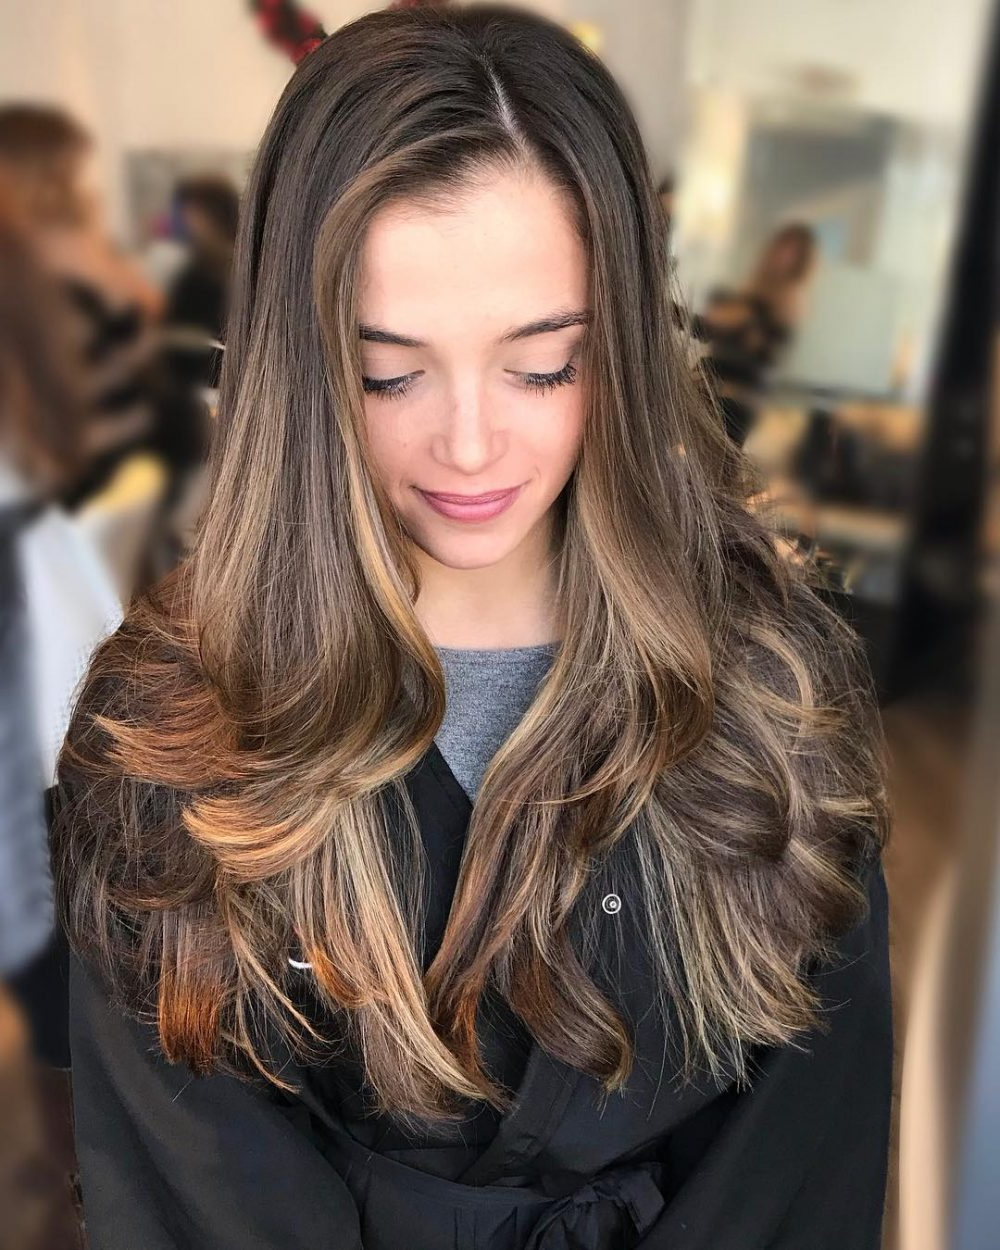 26 Prettiest Hairstyles For Long Straight Hair In 2019 With Regard To Widely Used Classic Layers Long Hairstyles For Volume And Bounce (View 1 of 20)